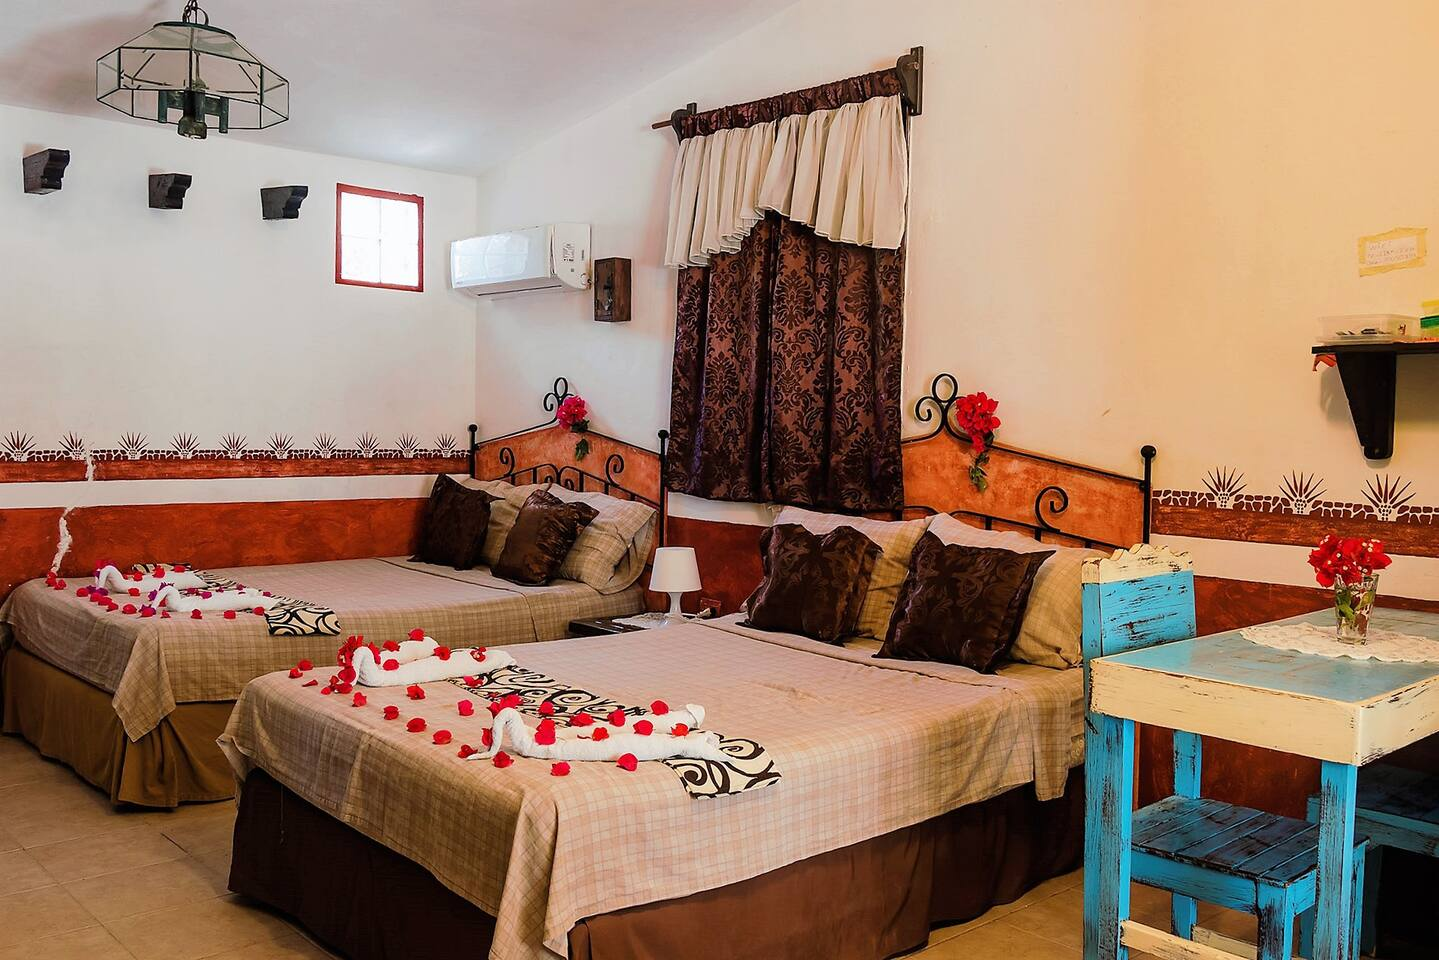 2 cosy doublebeds in the lodges oneroom condo with terrace, private bathroom, wc and shower